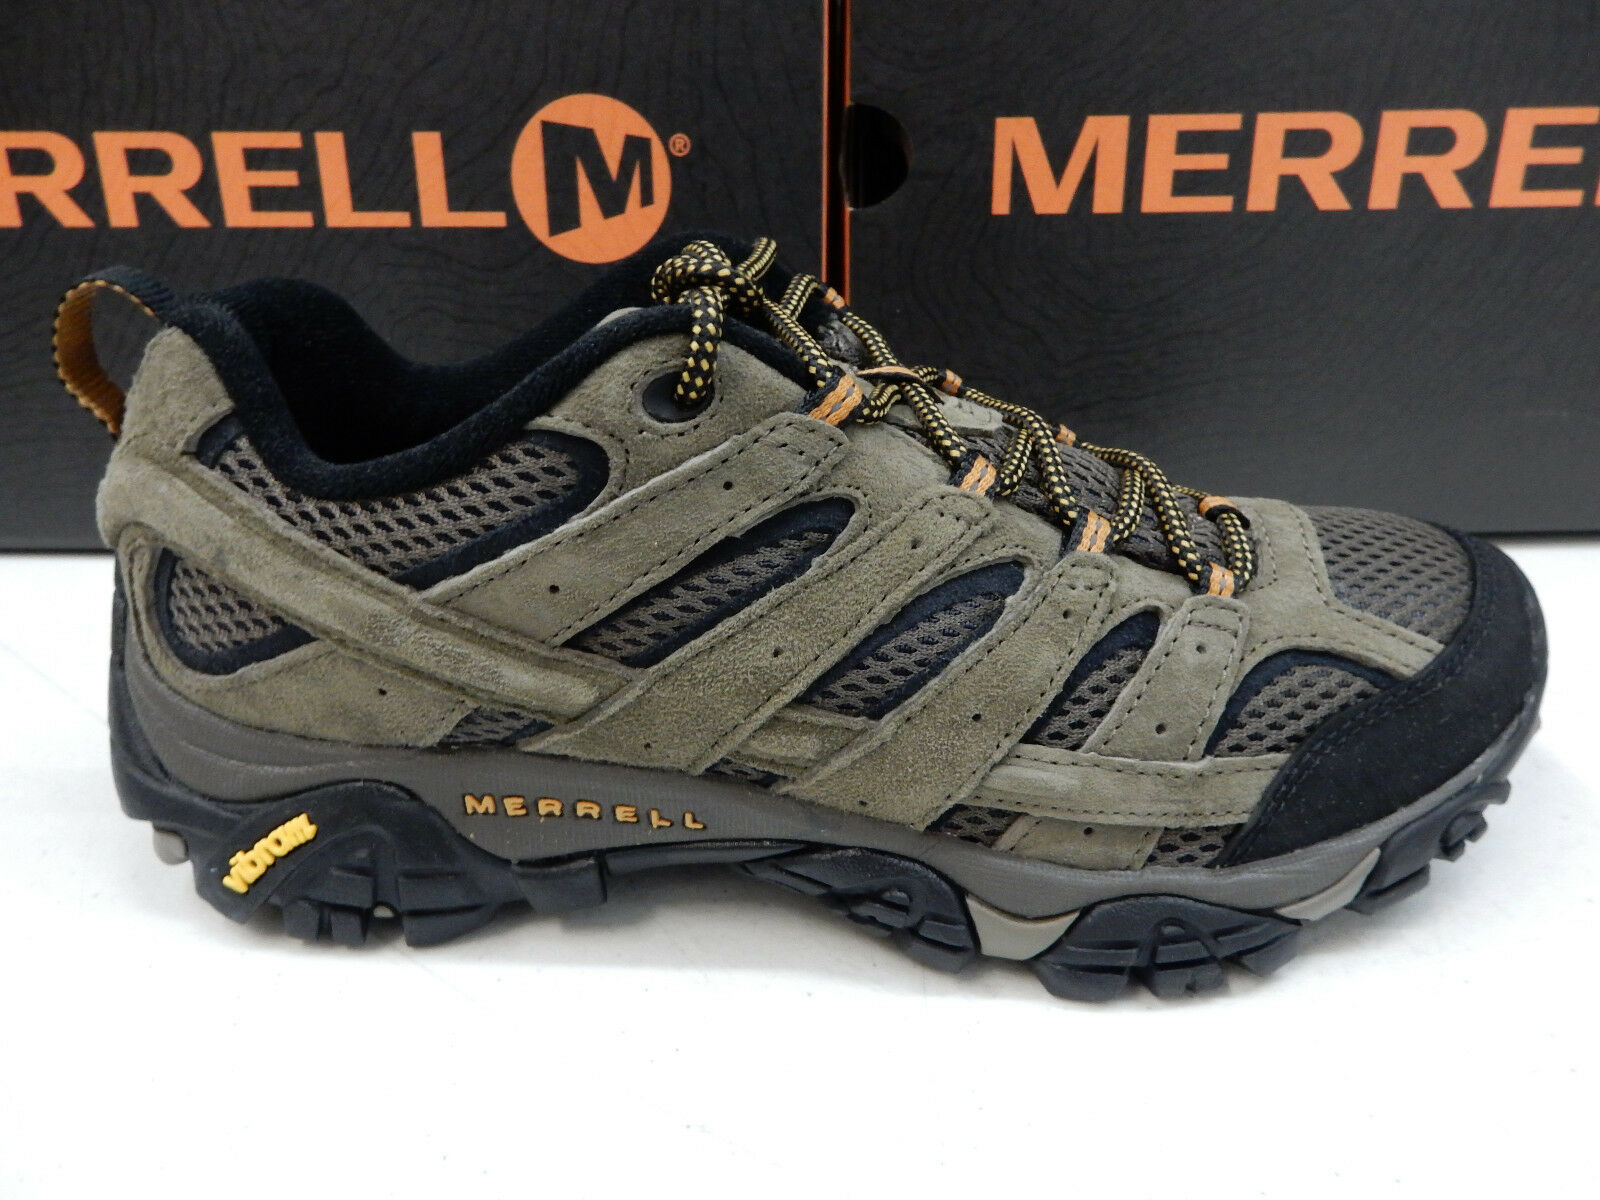 MERRELL Uomo HIKING MOAB 2 VENTILATOR WALNUT WALNUT VENTILATOR SIZE 13 WIDE a301e5